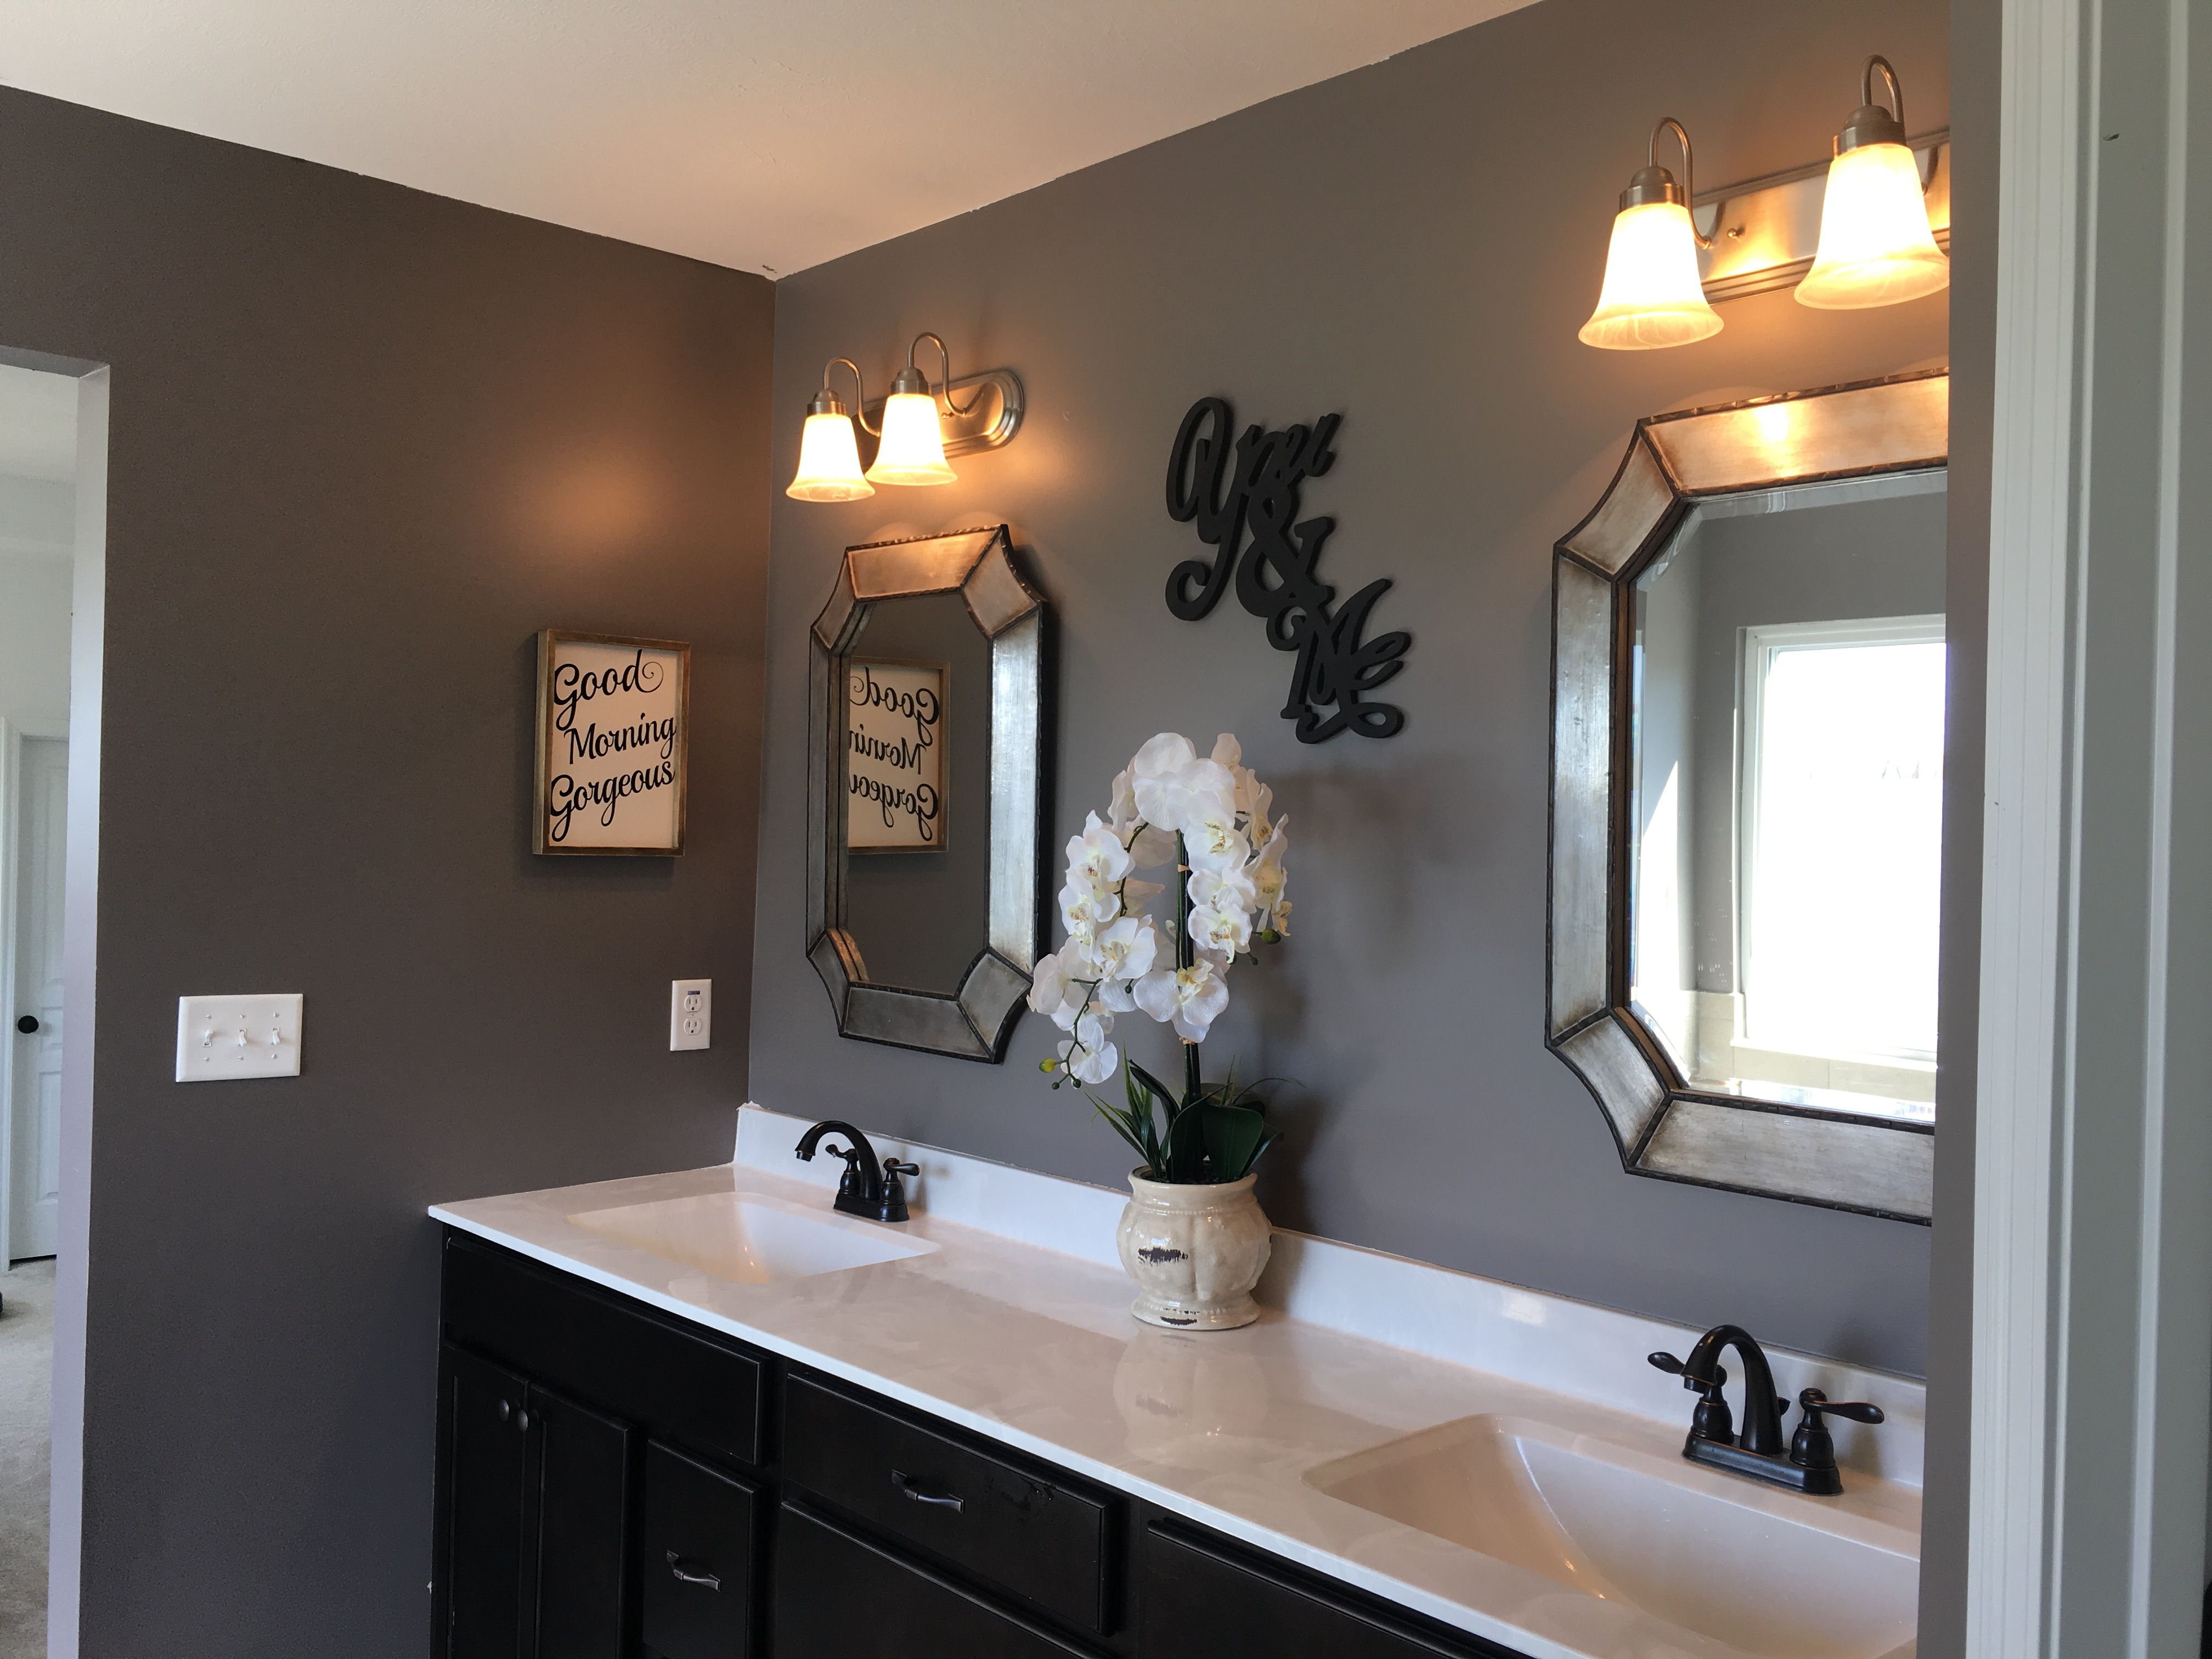 Sherwin Williams Mink bathroom  Paint Colors Ideas in